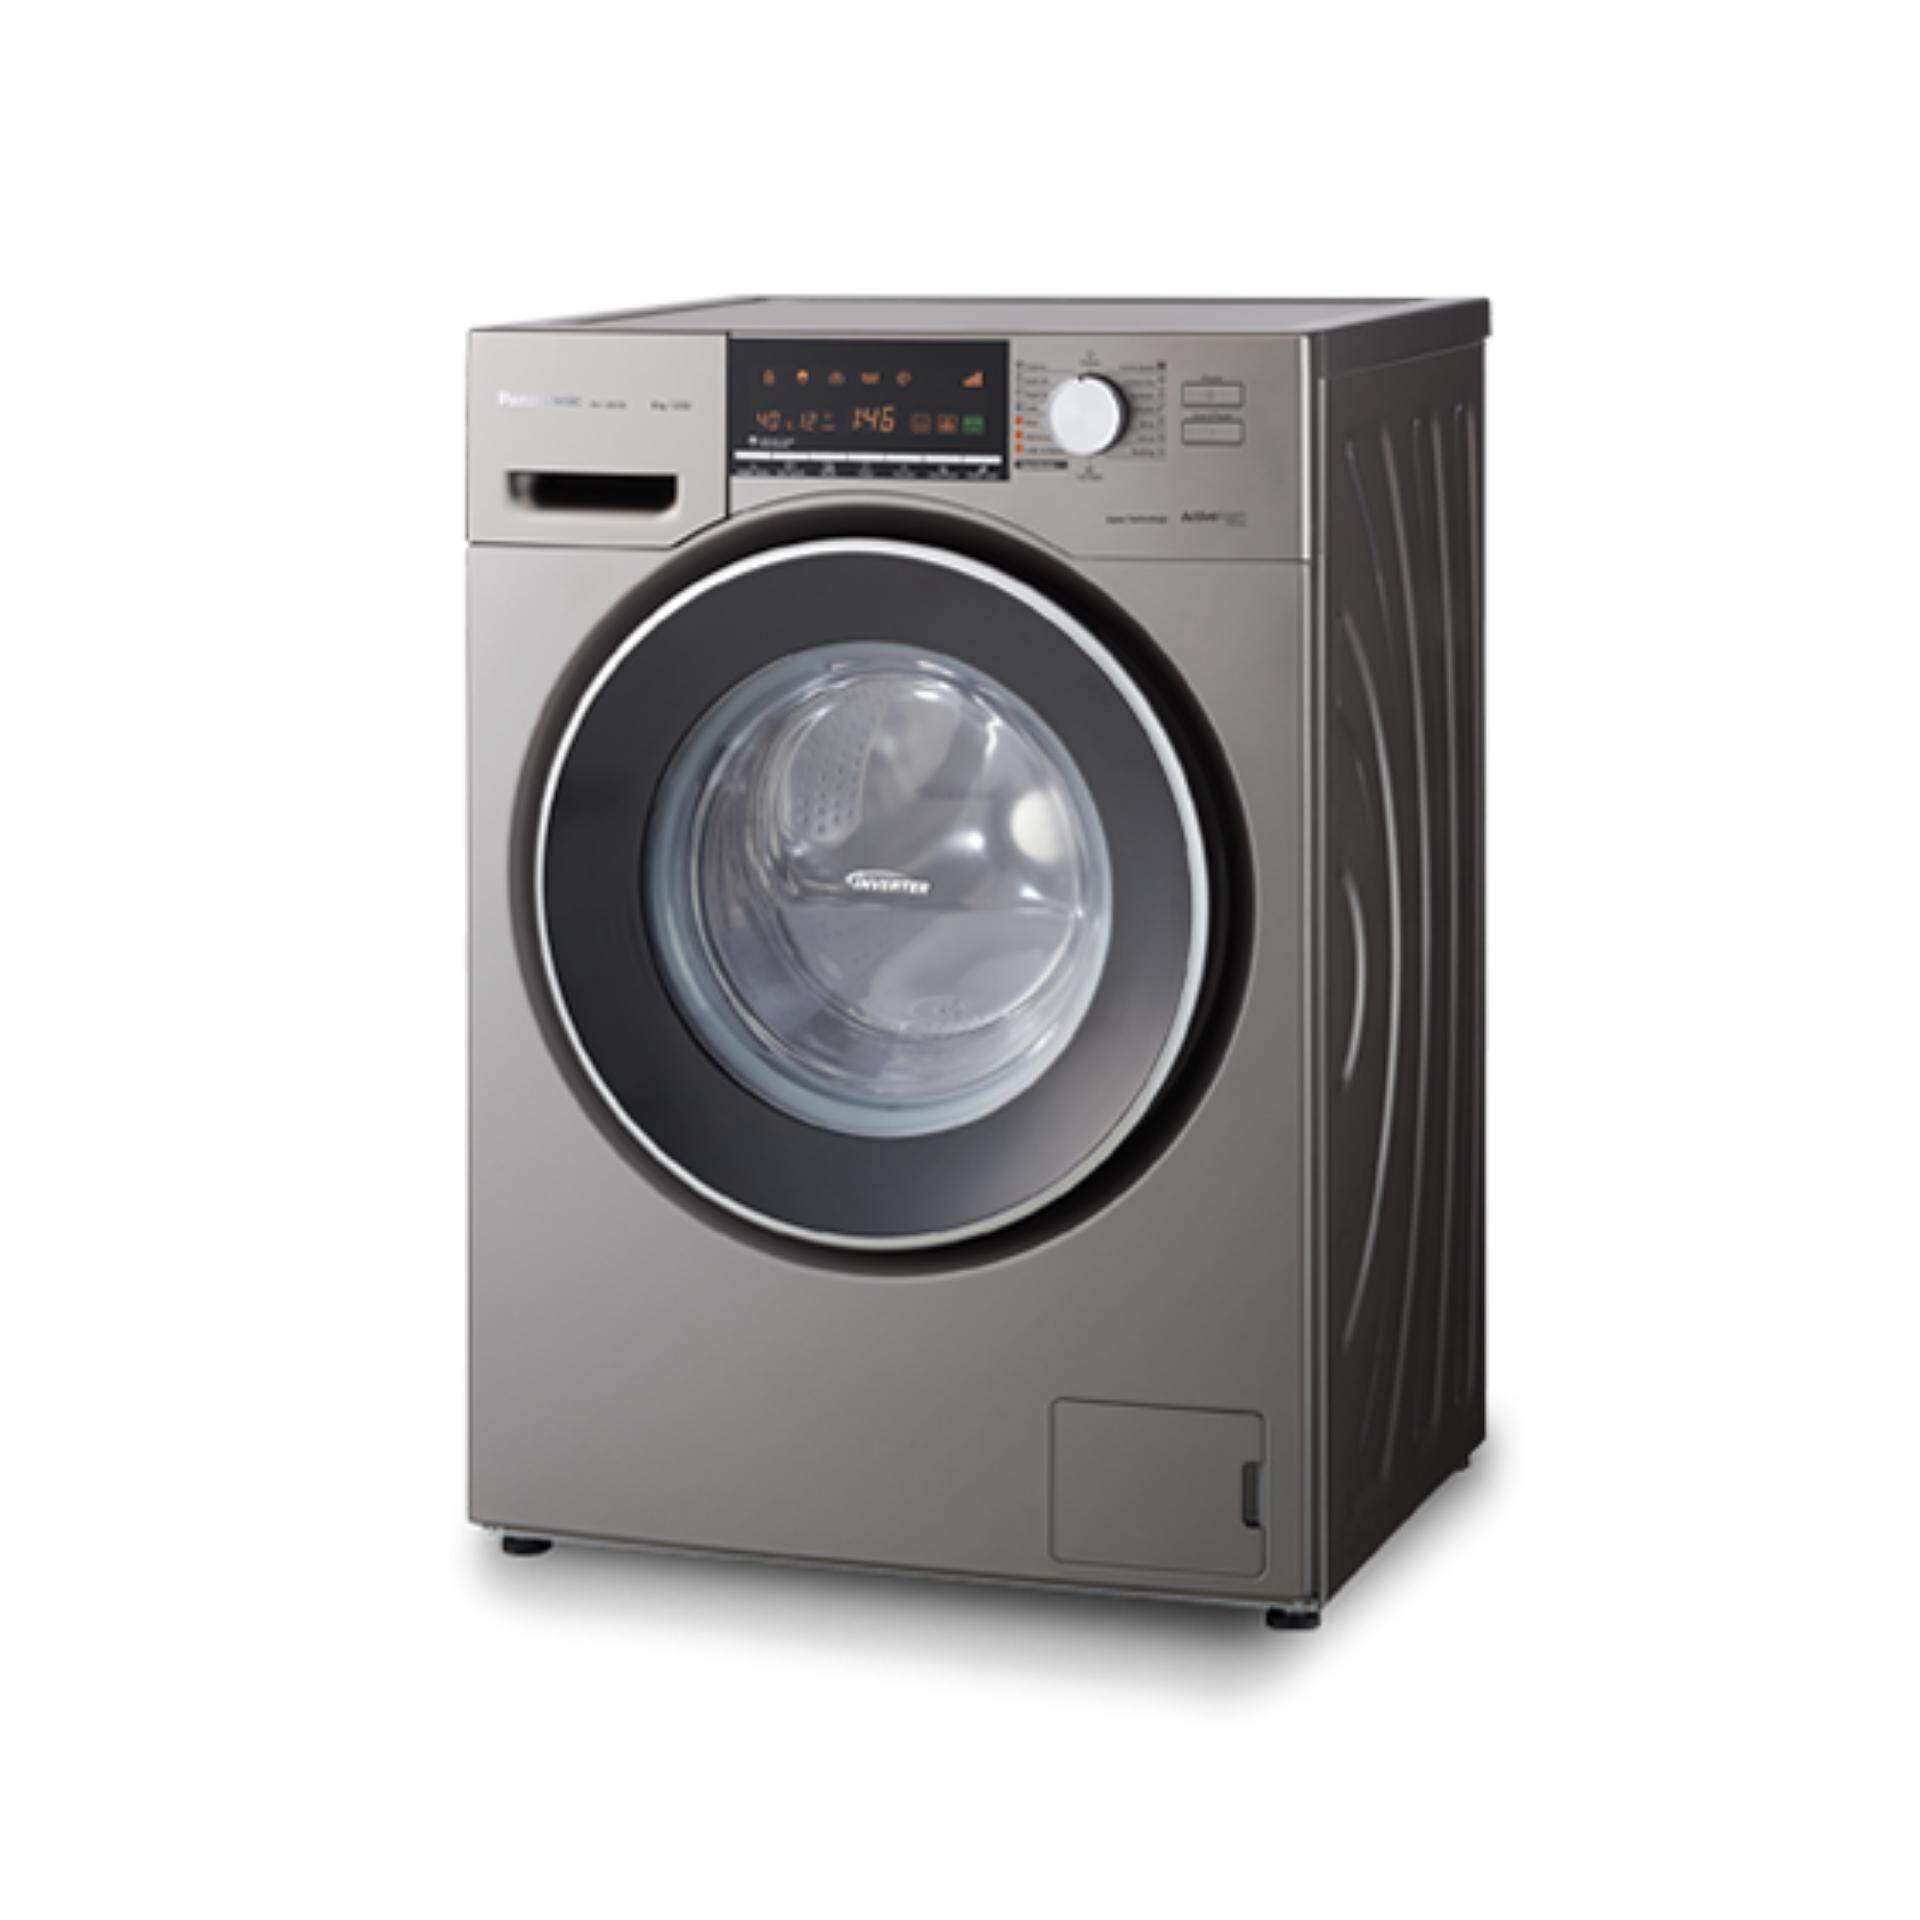 PANASONIC 8KG Front Load Washer NA-128VX6LMY - ActiveFoam System with Fast Wash